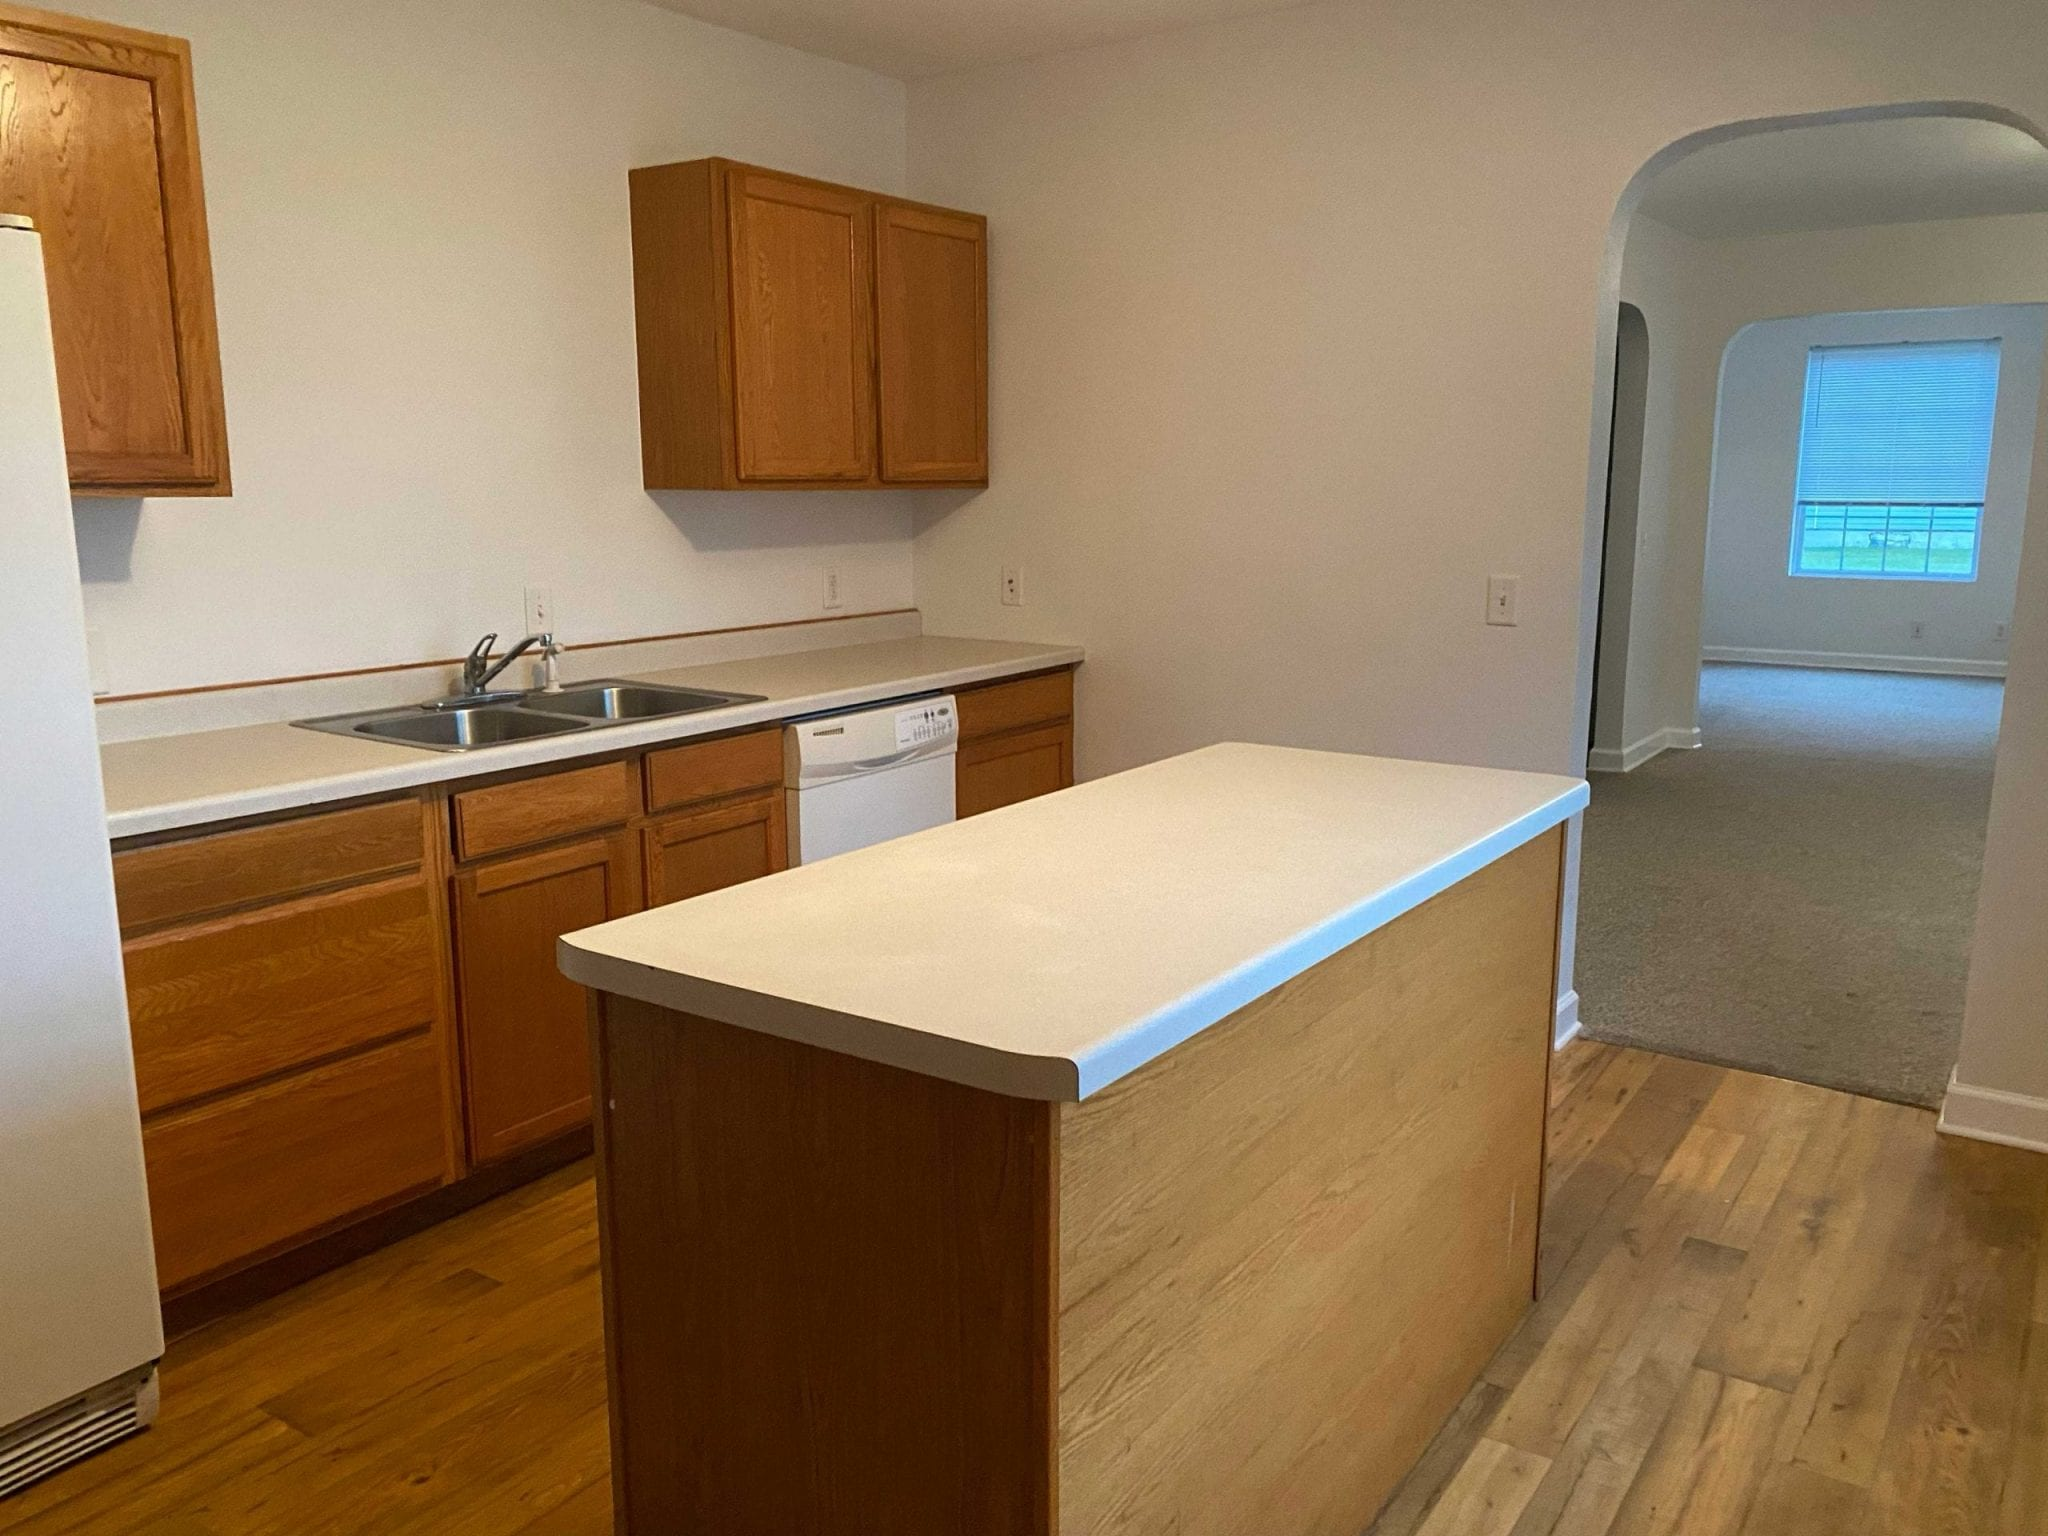 Appliances include: Stove, Refrigerator, Washer, Dryer